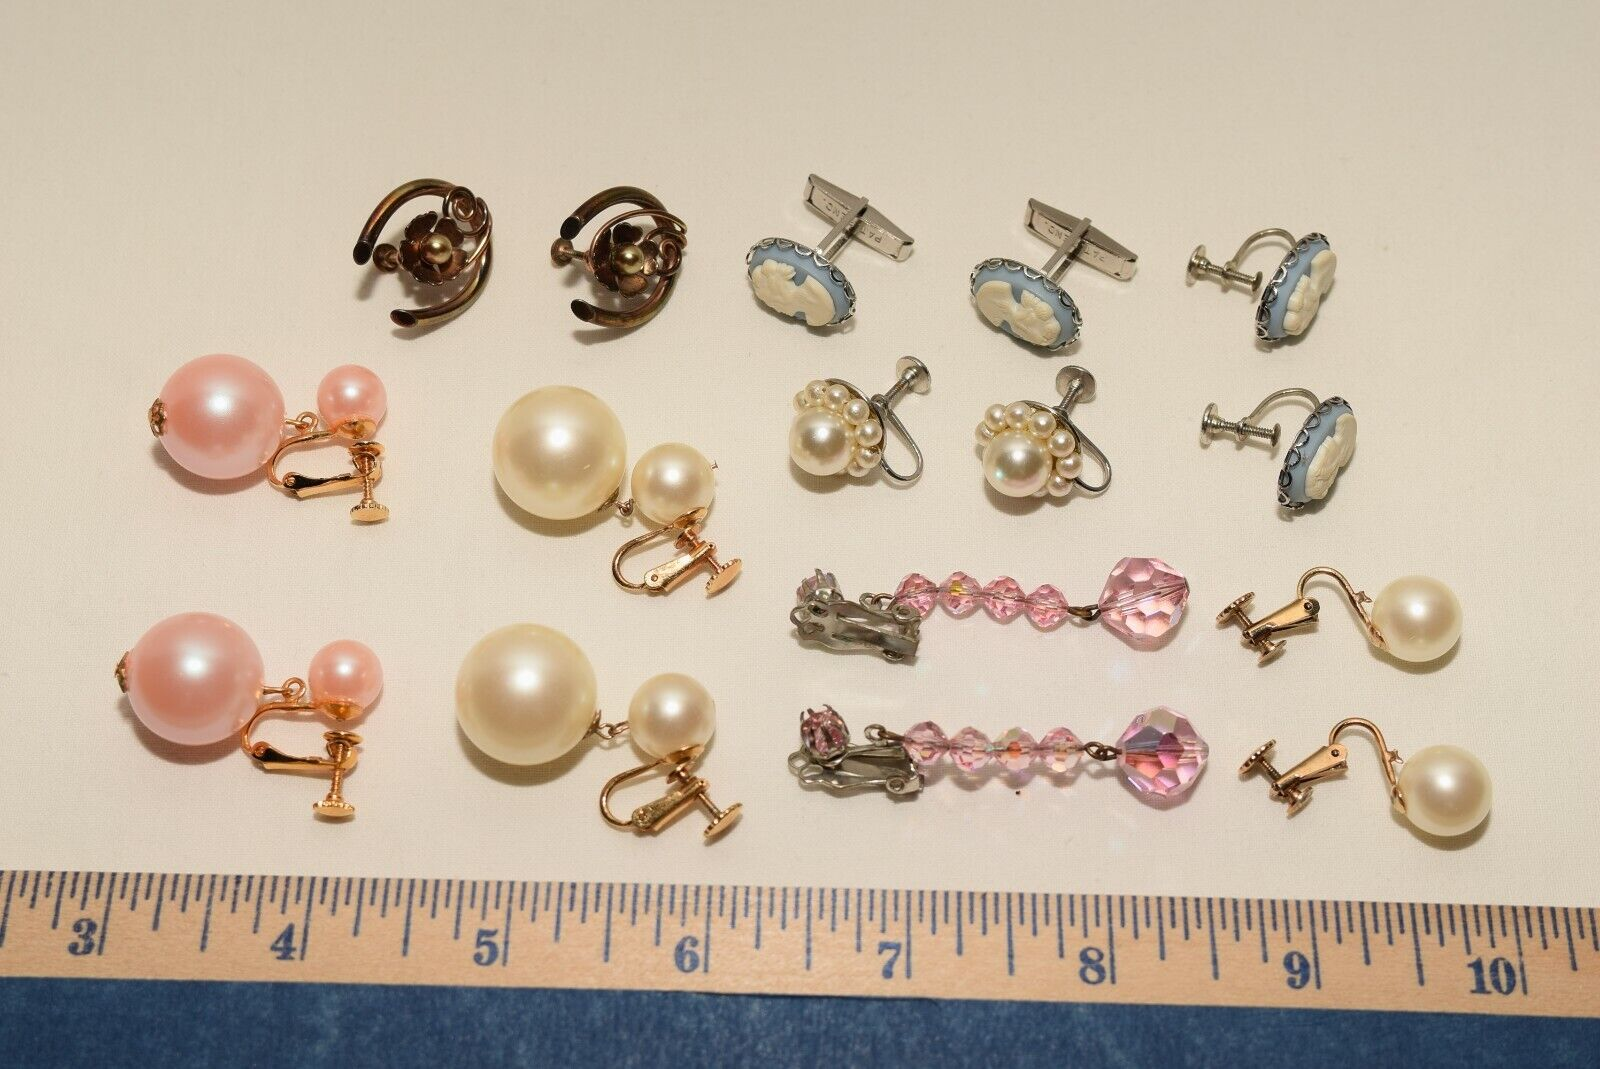 Vintage Lot Of 7 Clip-On Earrings Faux Pearls Screw Backs One With Cufflinks - $17.75